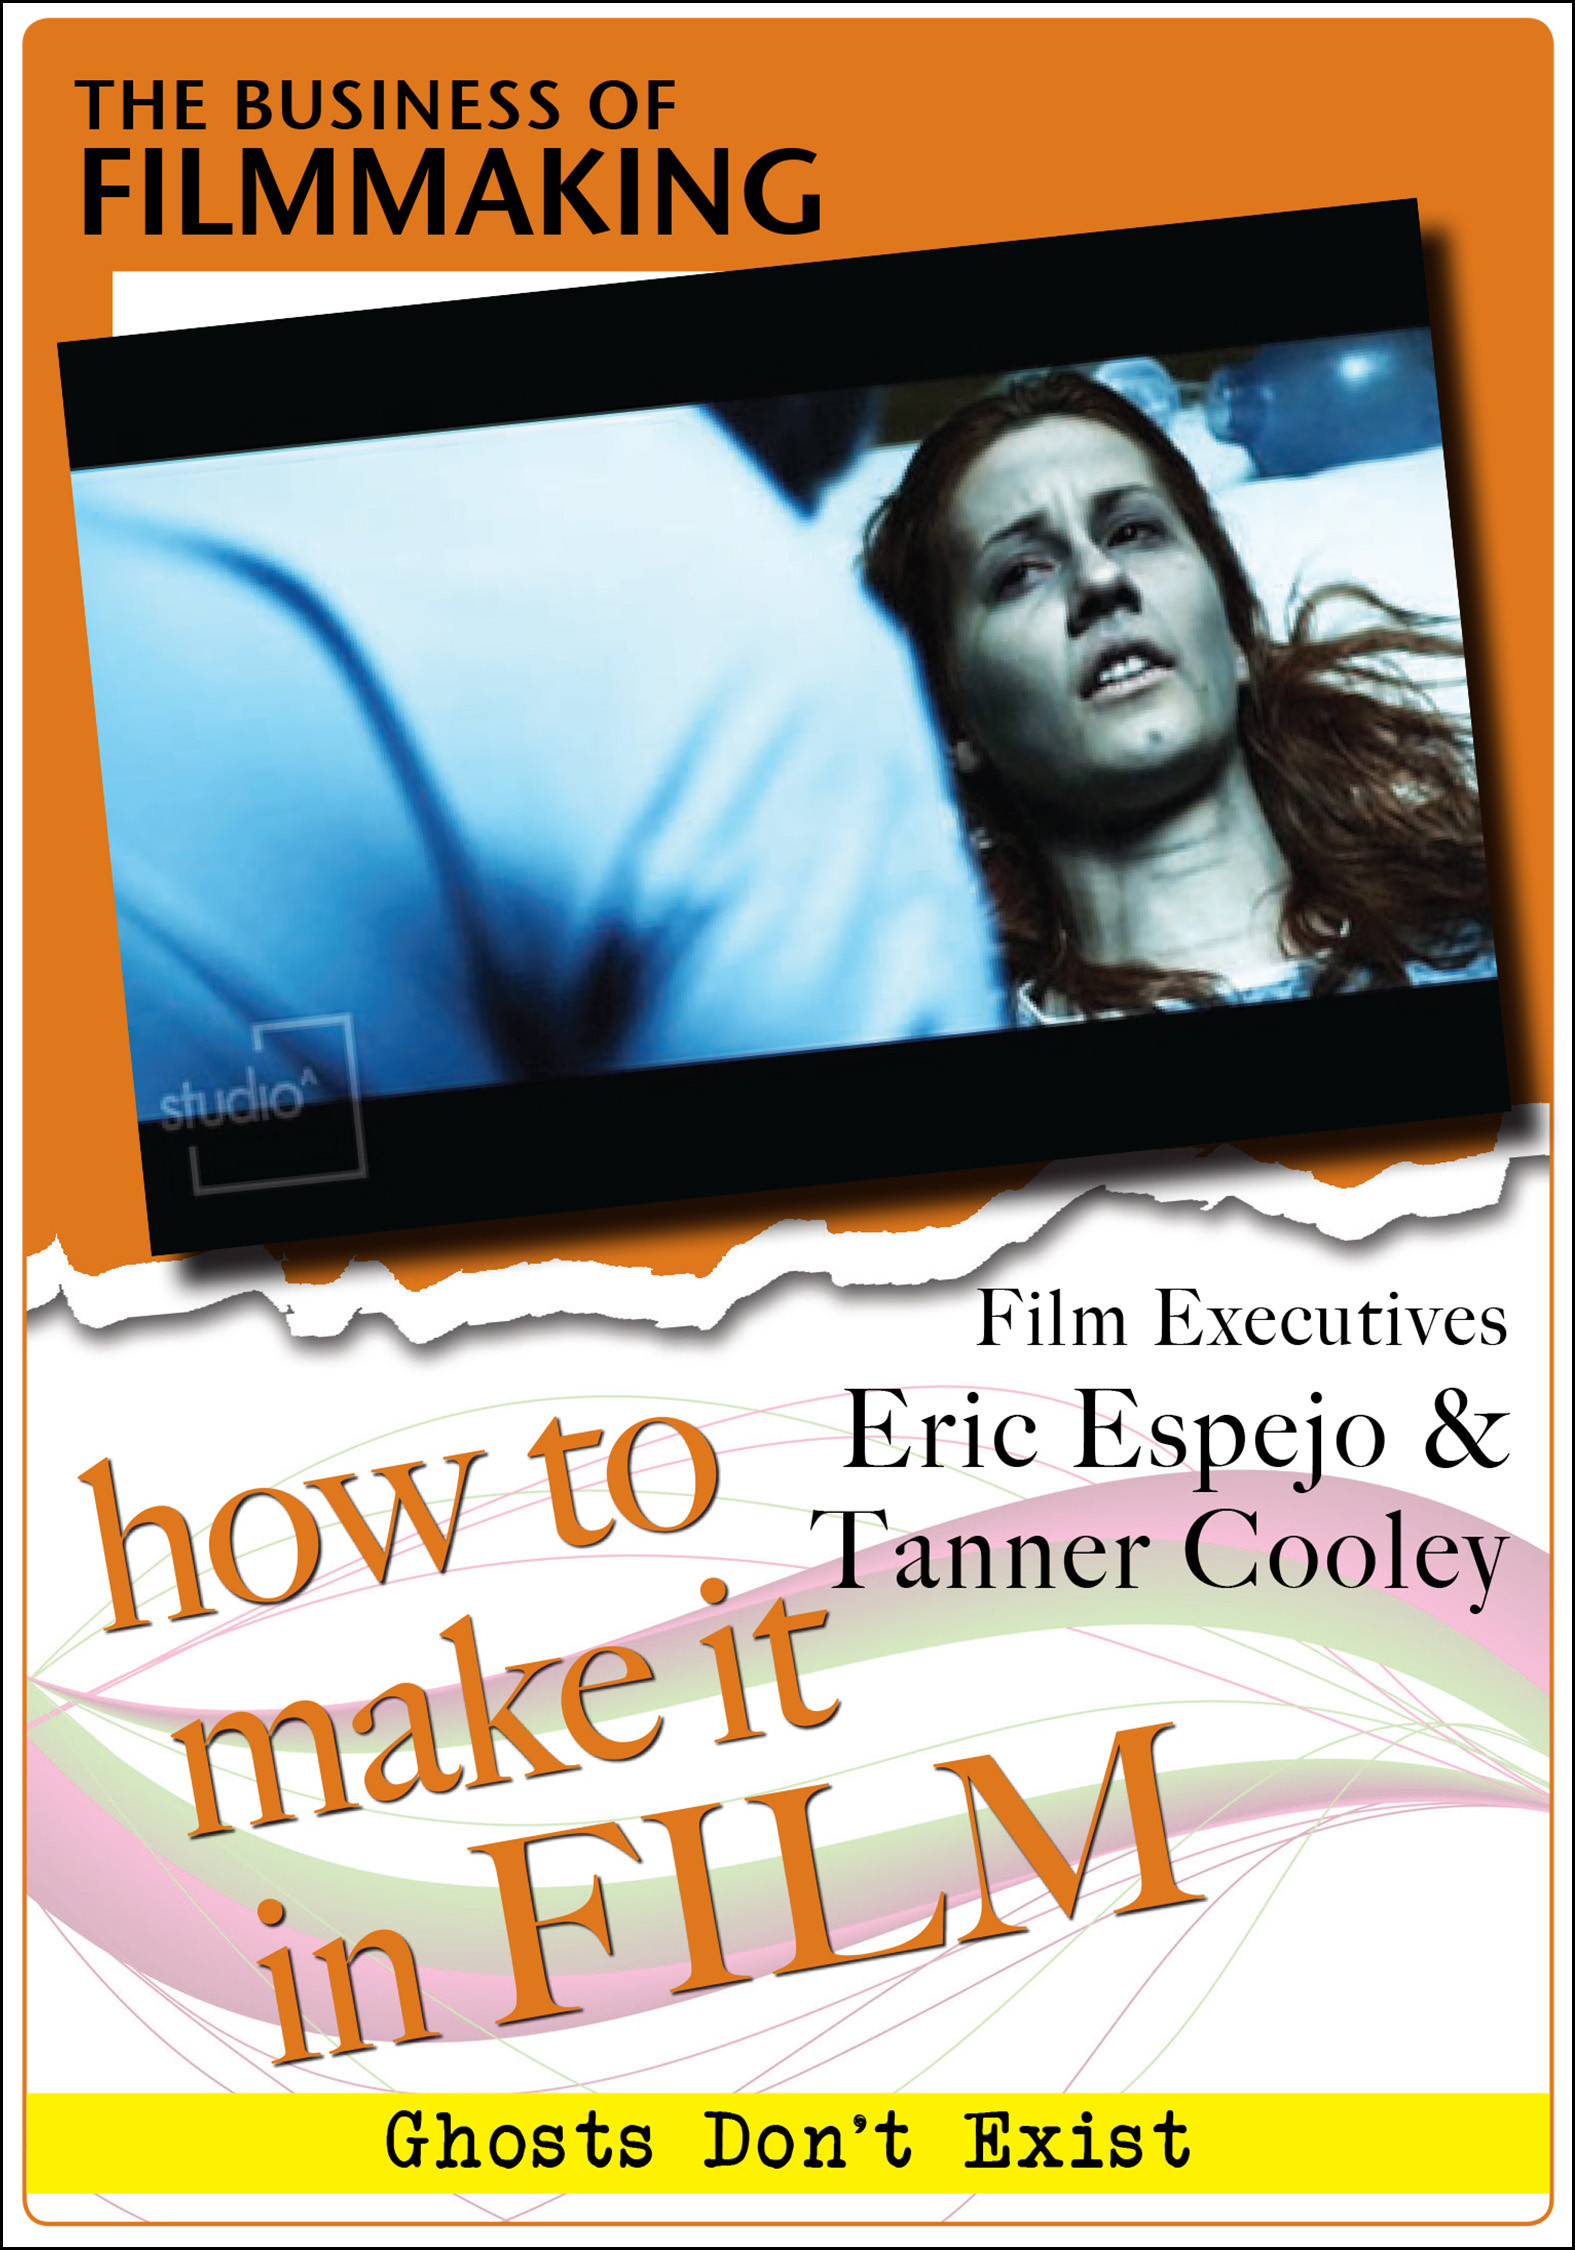 F2833 - The Business of Film Film with Executives Eric Espejo with Tanner Cooley